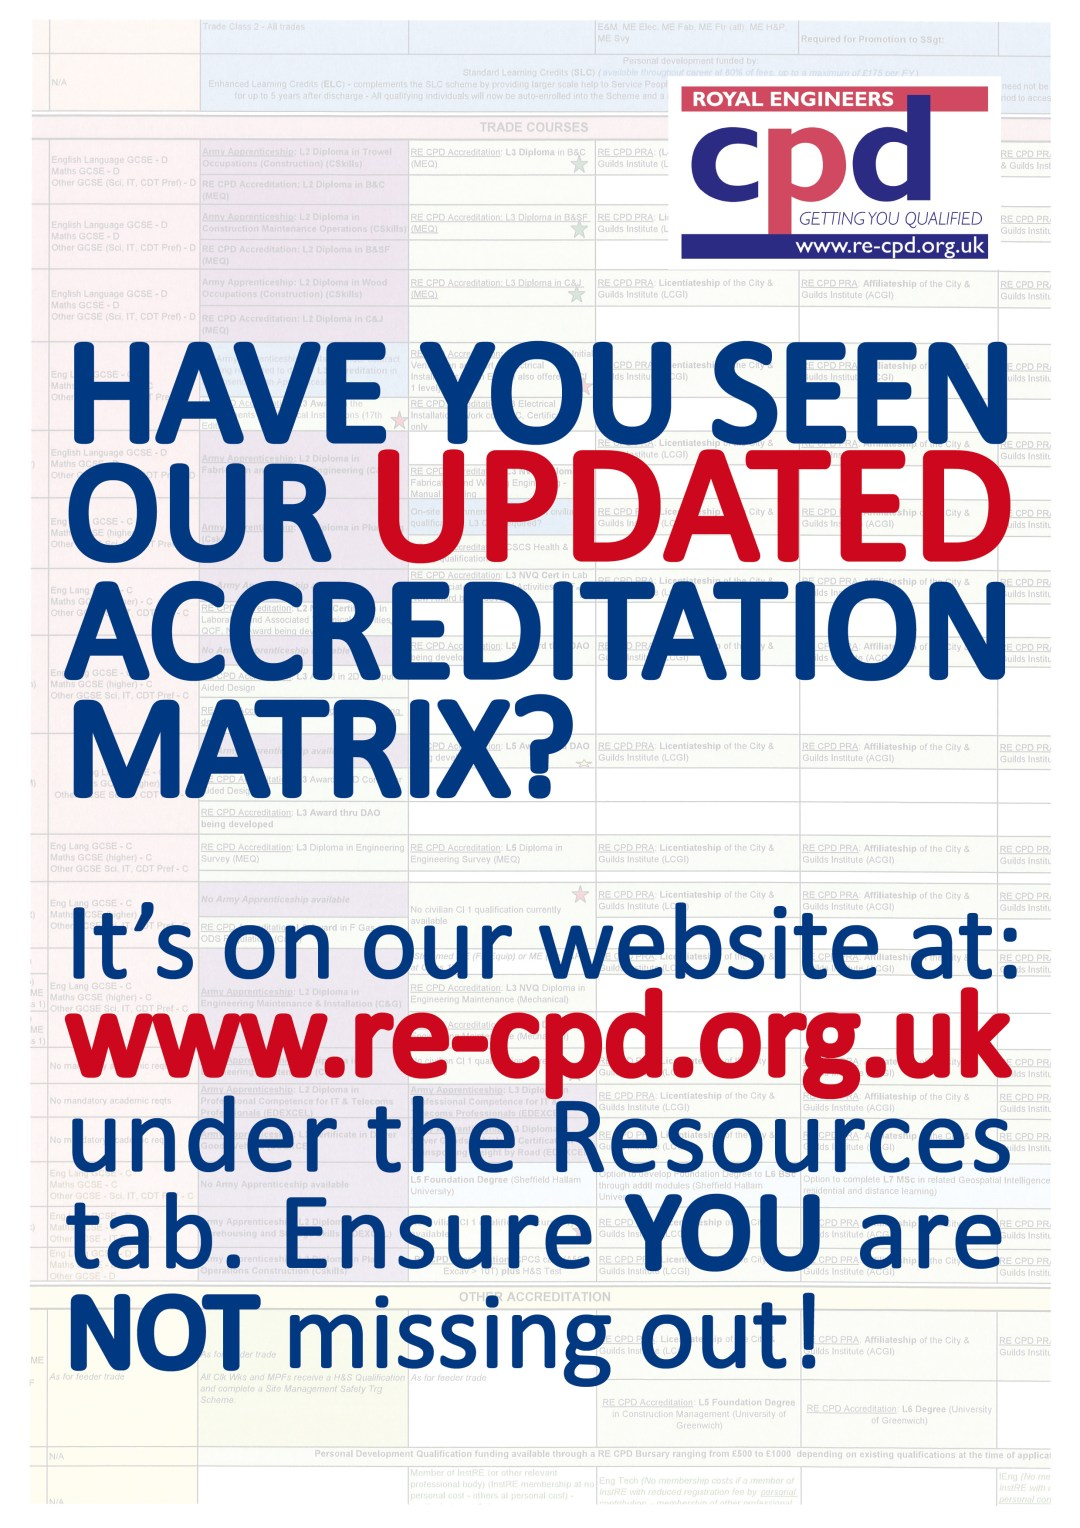 Updated Accreditation Matrix